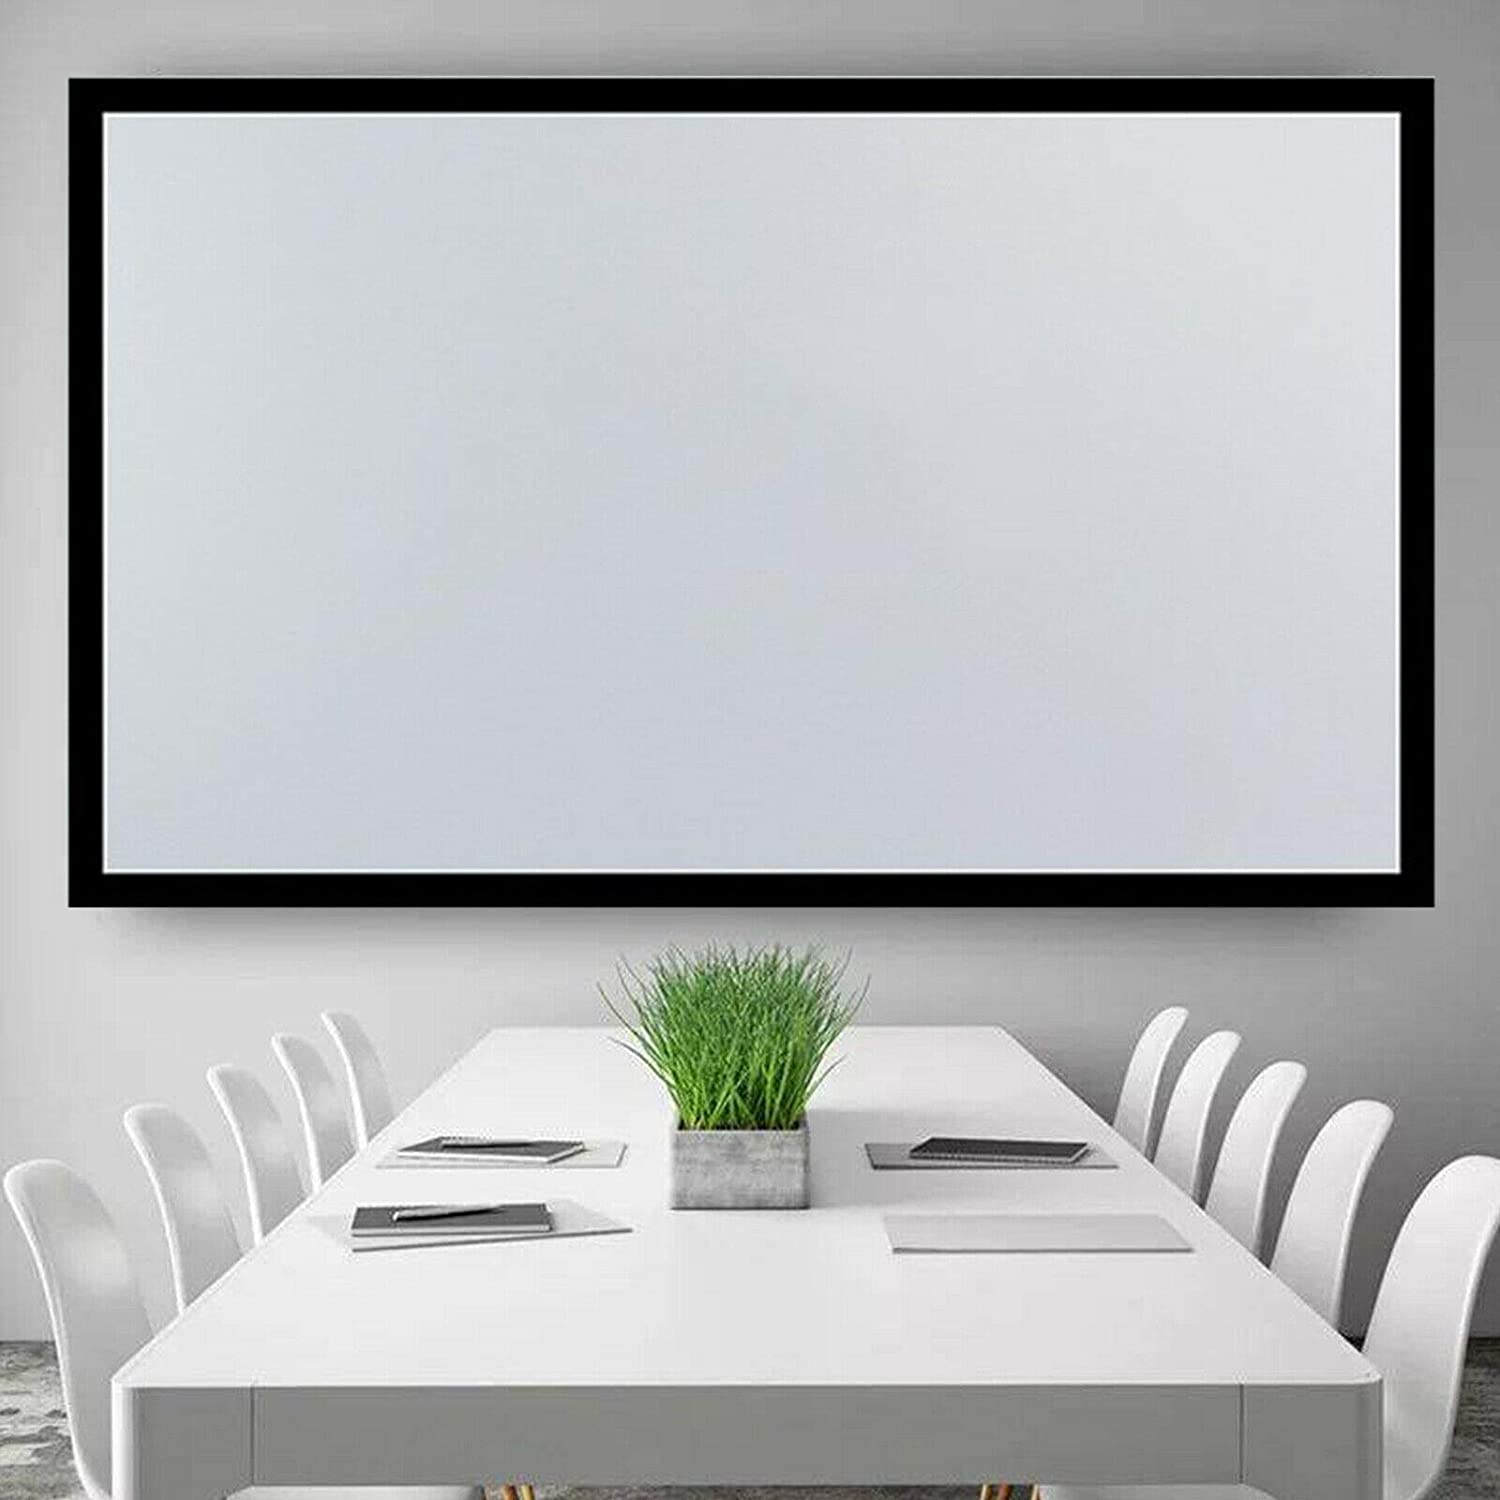 135-Inch Wall-Mounted Projector Screen, Us Fixed Aluminum Frame Projector Screen Home Theatre Hd Tv Projection PVC Wall Mount Movie Curtain Film Theater Wall-Mounted Cinema Portable